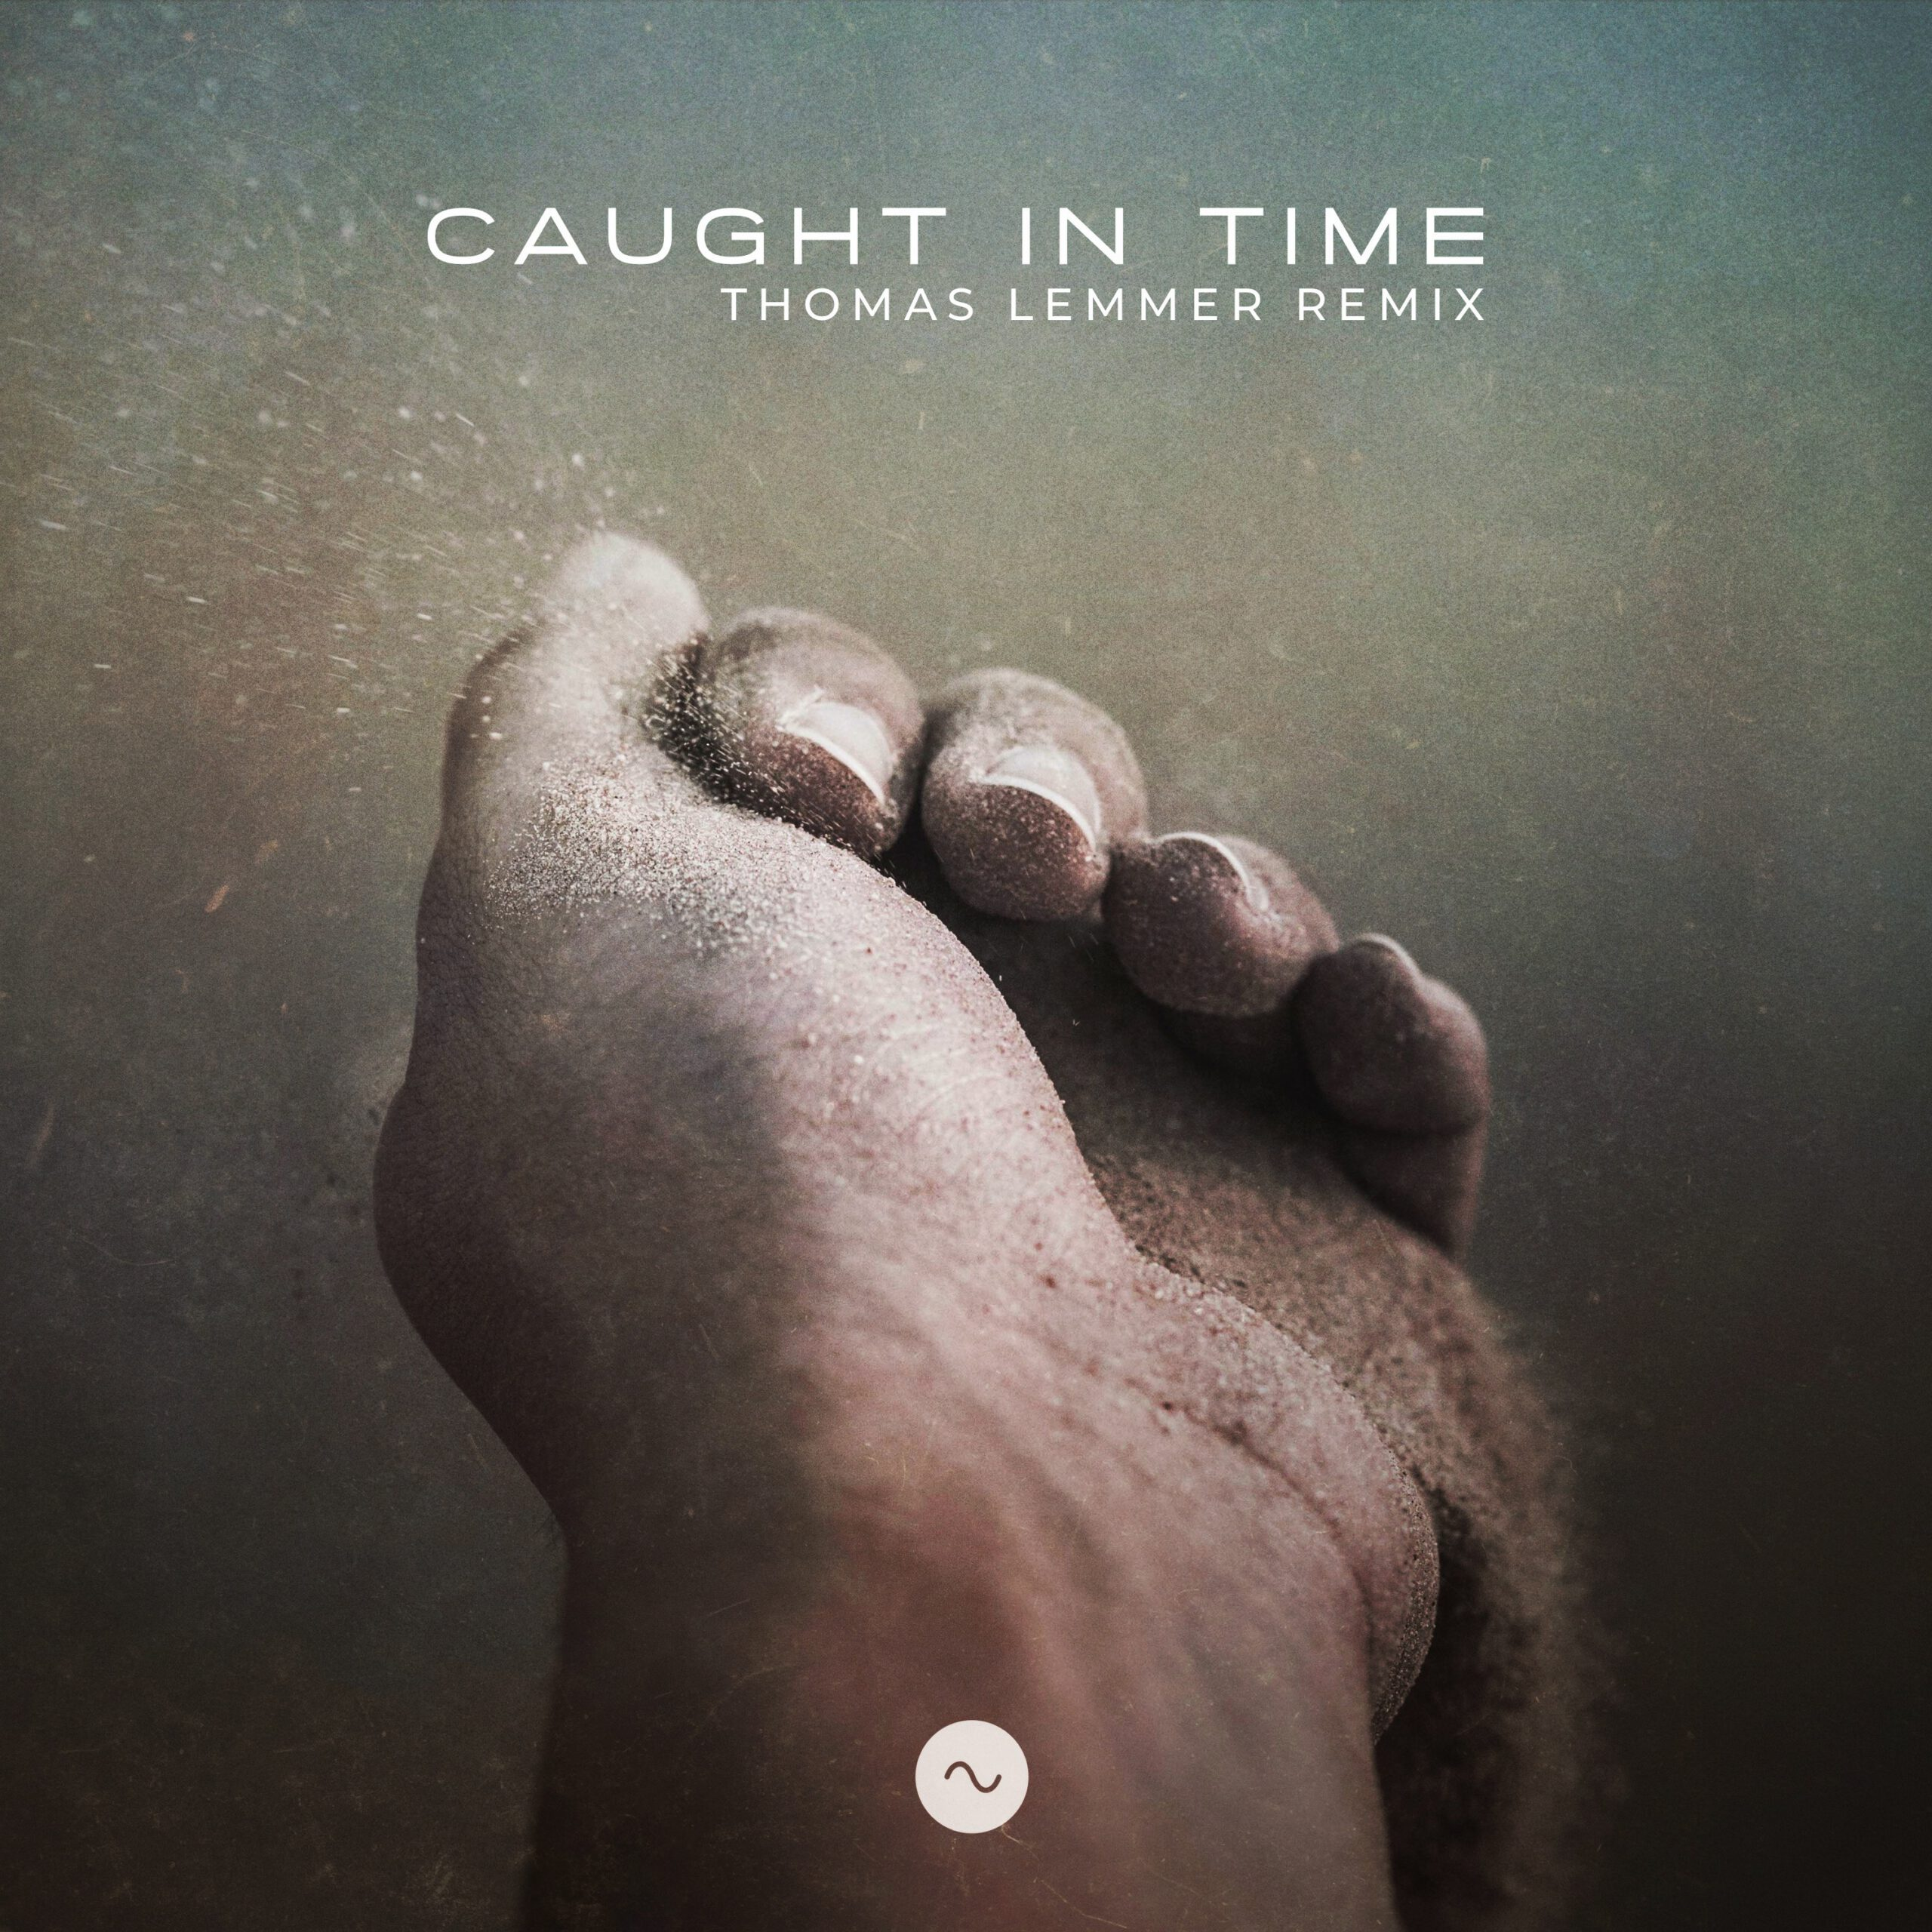 SINE - Caught In Time (Thomas Lemmer Remix)